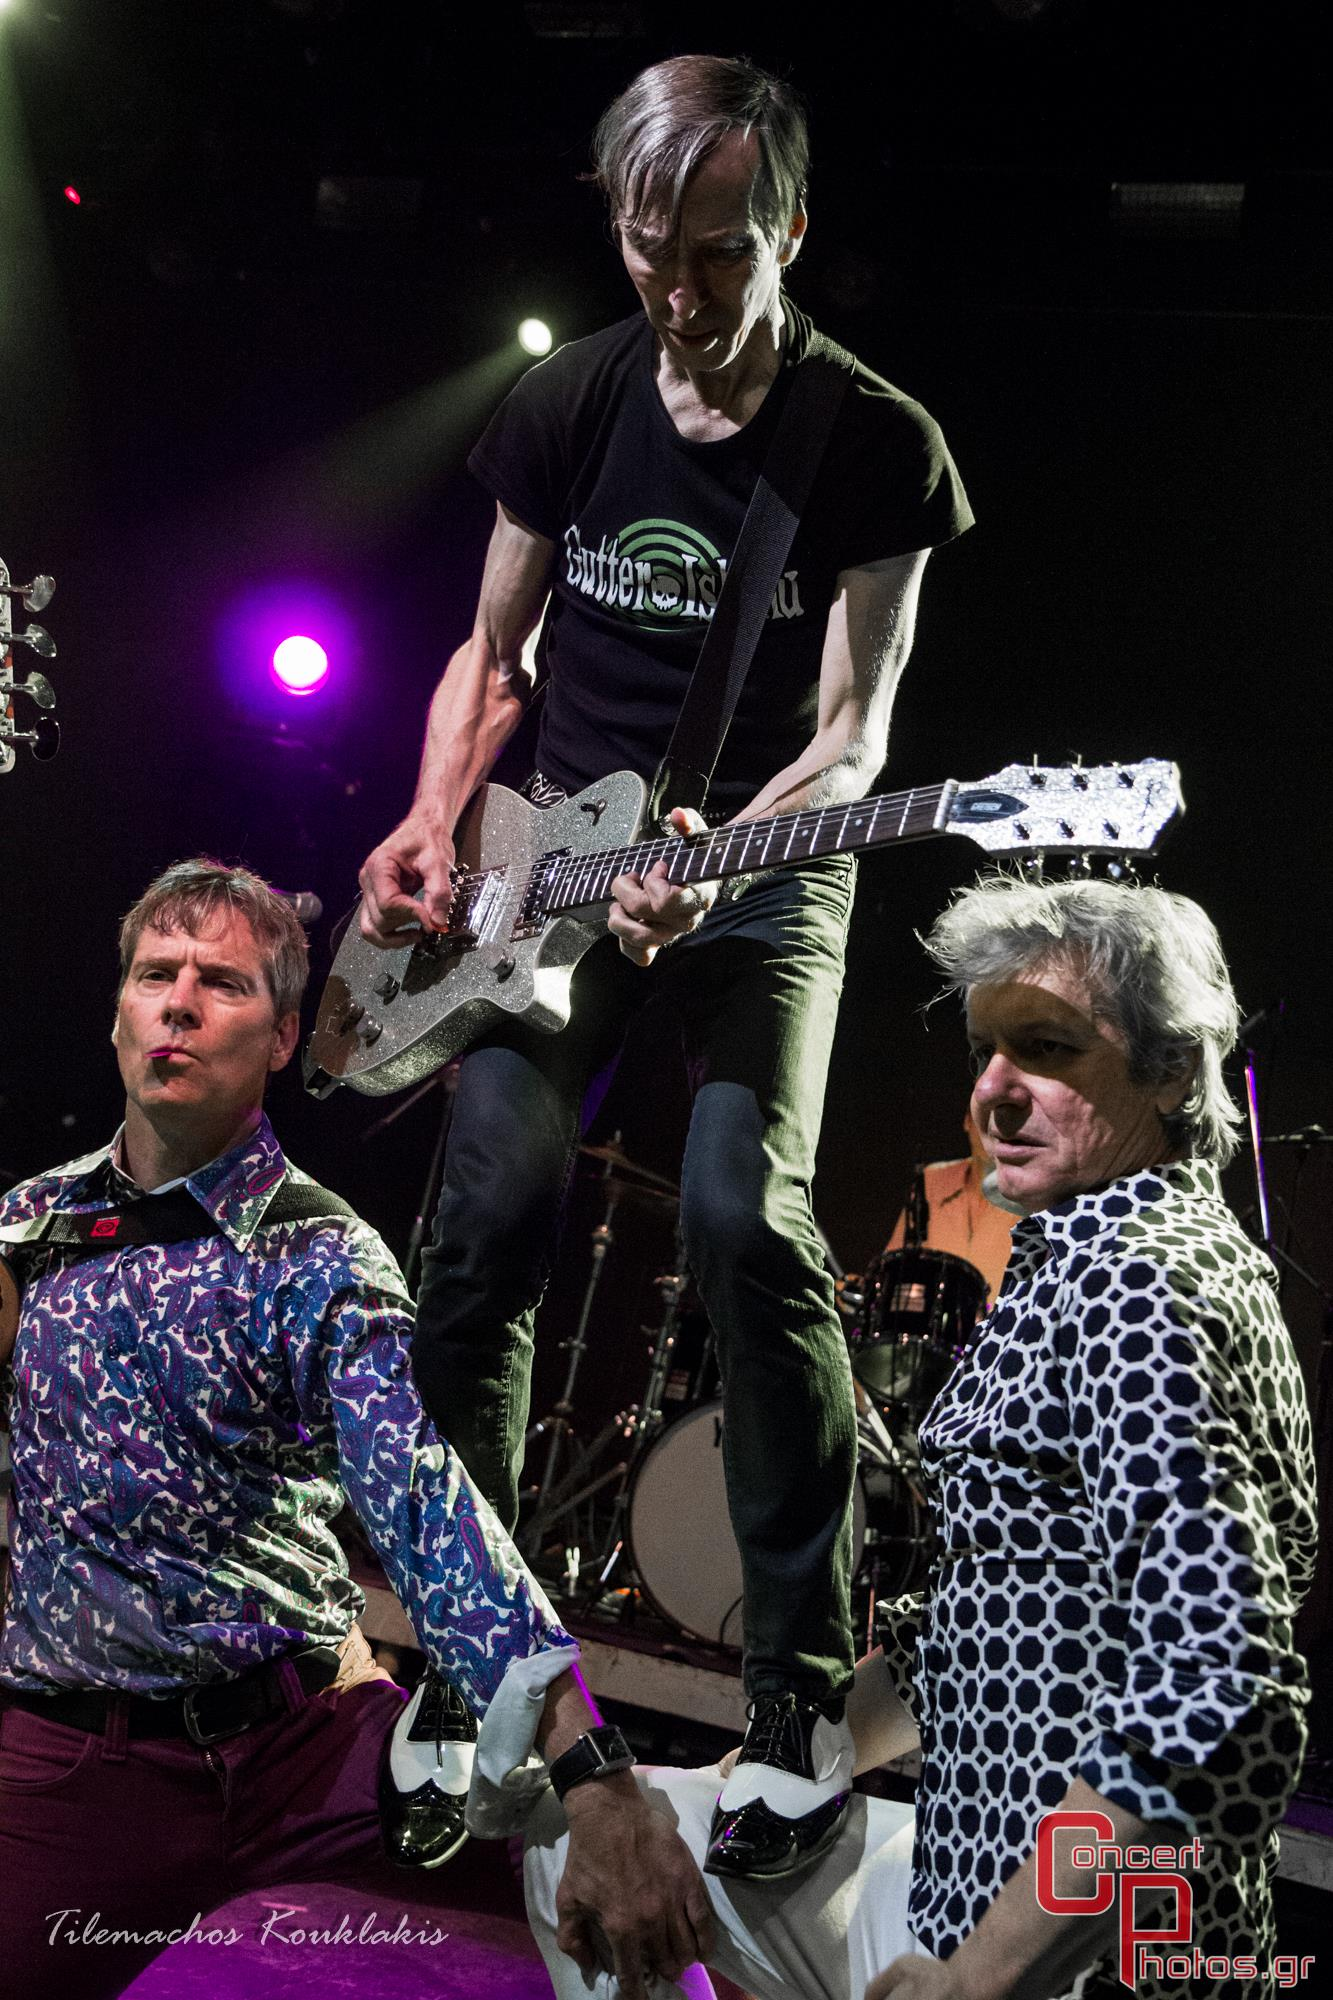 The Fleshtones - Dirty Fuse - The Statycs-The Fleshtones - Dirty Fuse - The Statycs photographer:  - IMG_8463